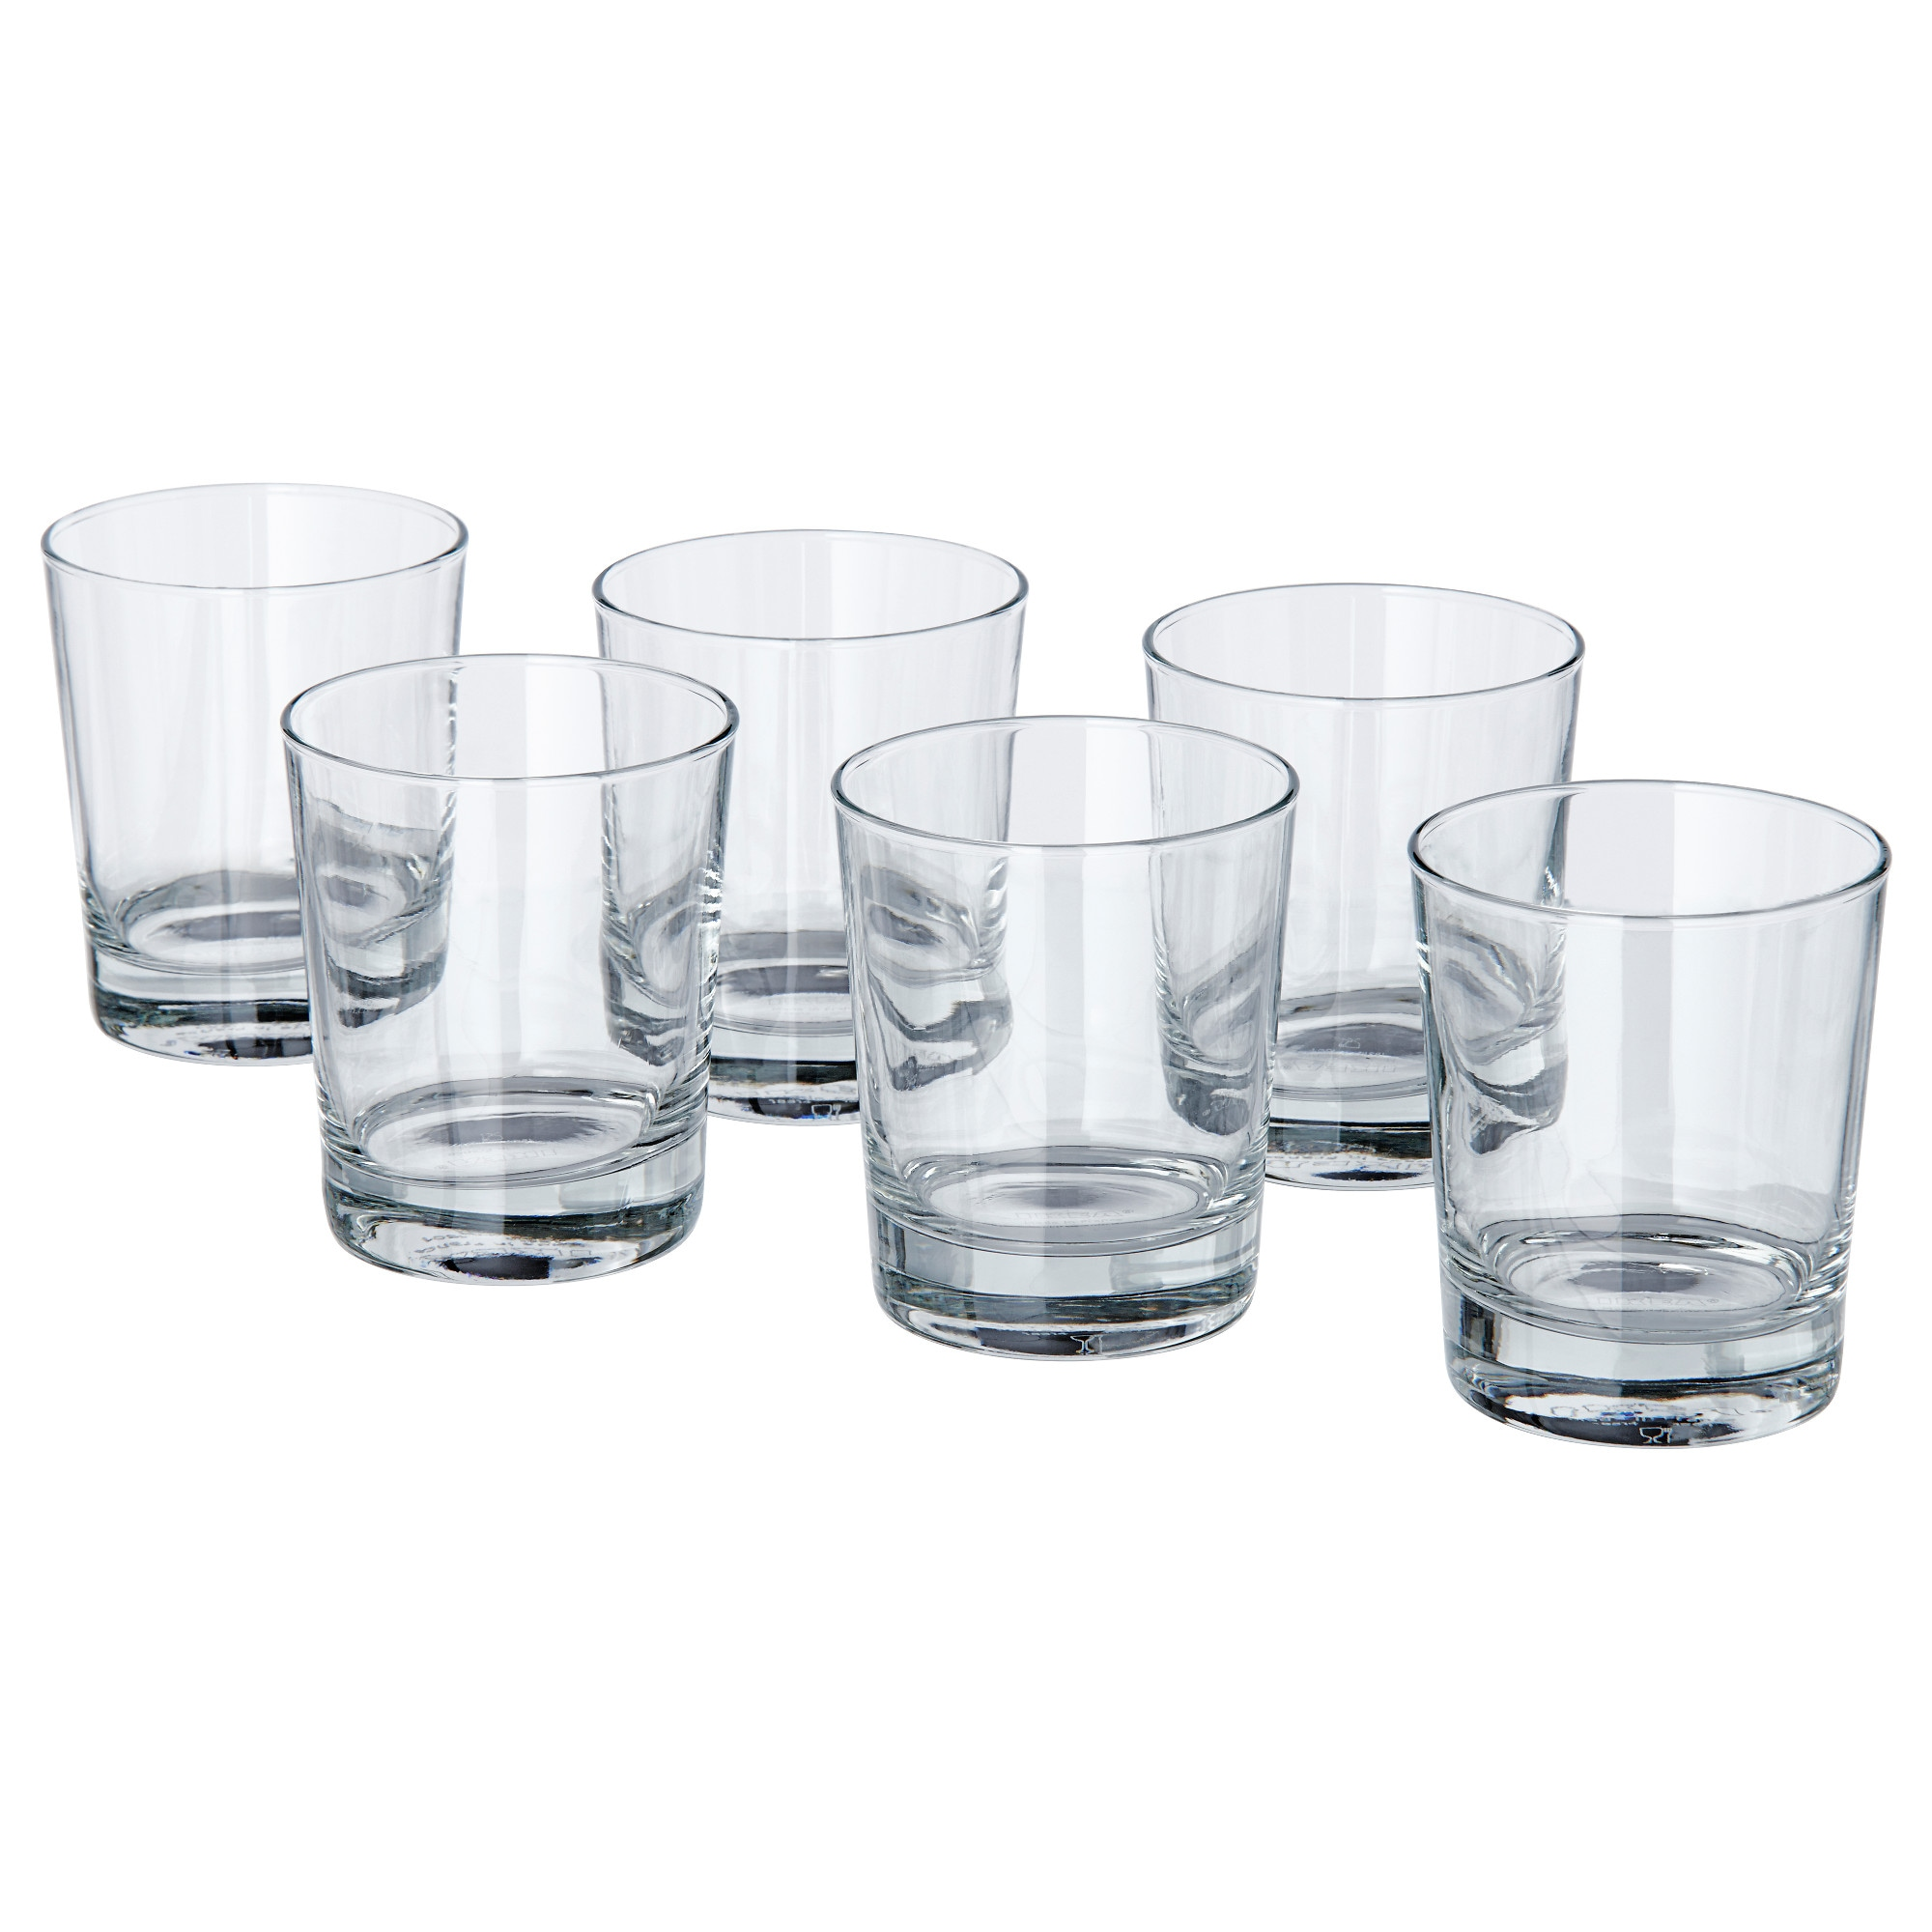 highball glass size images galleries